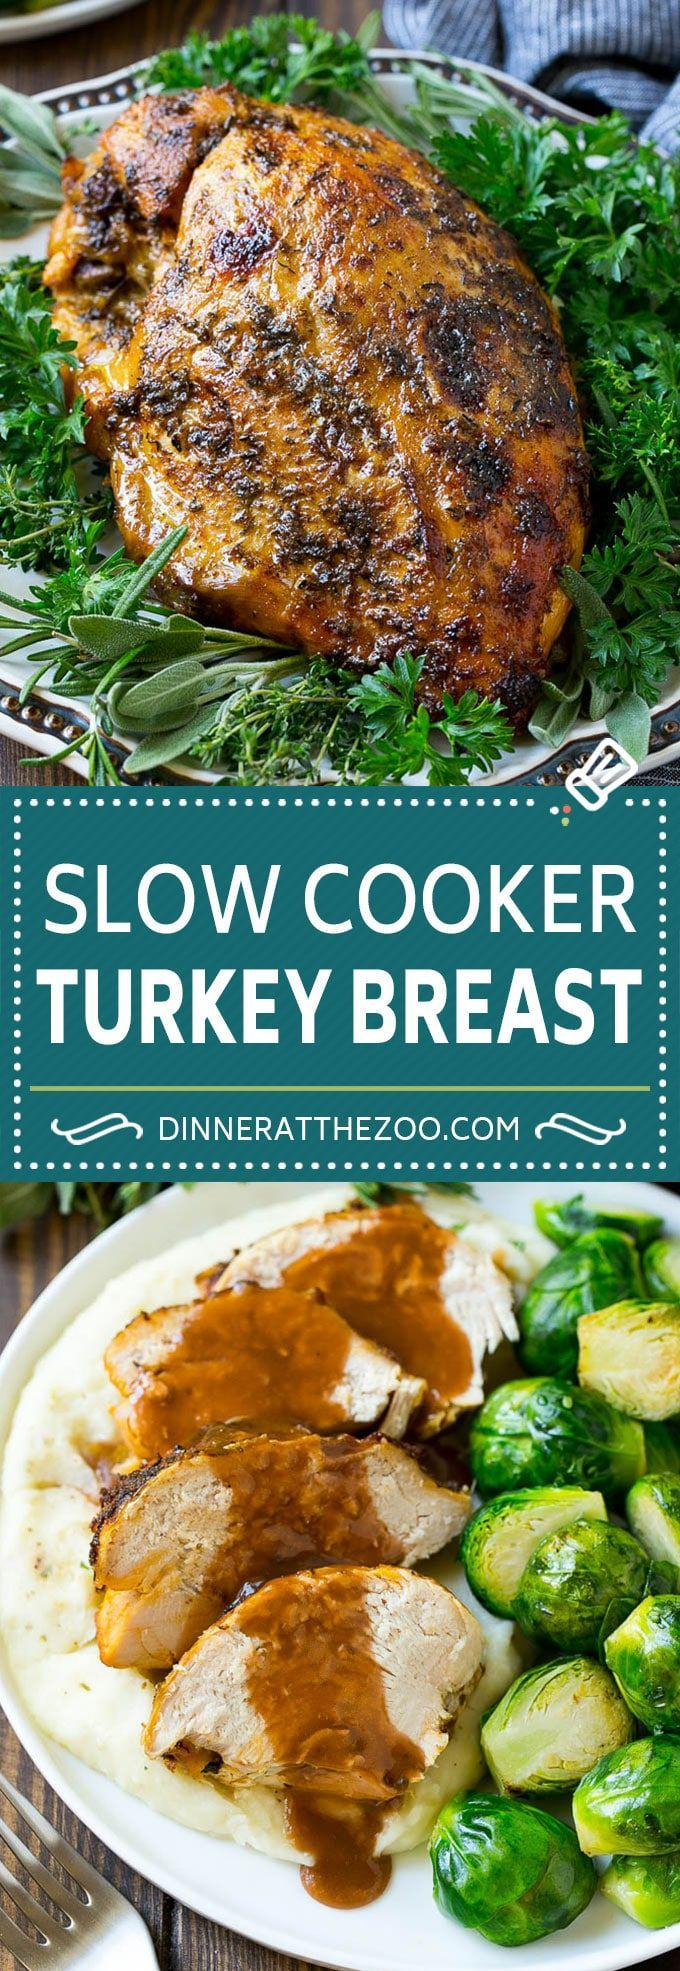 Photo of Slow Cooker Turkey Breast